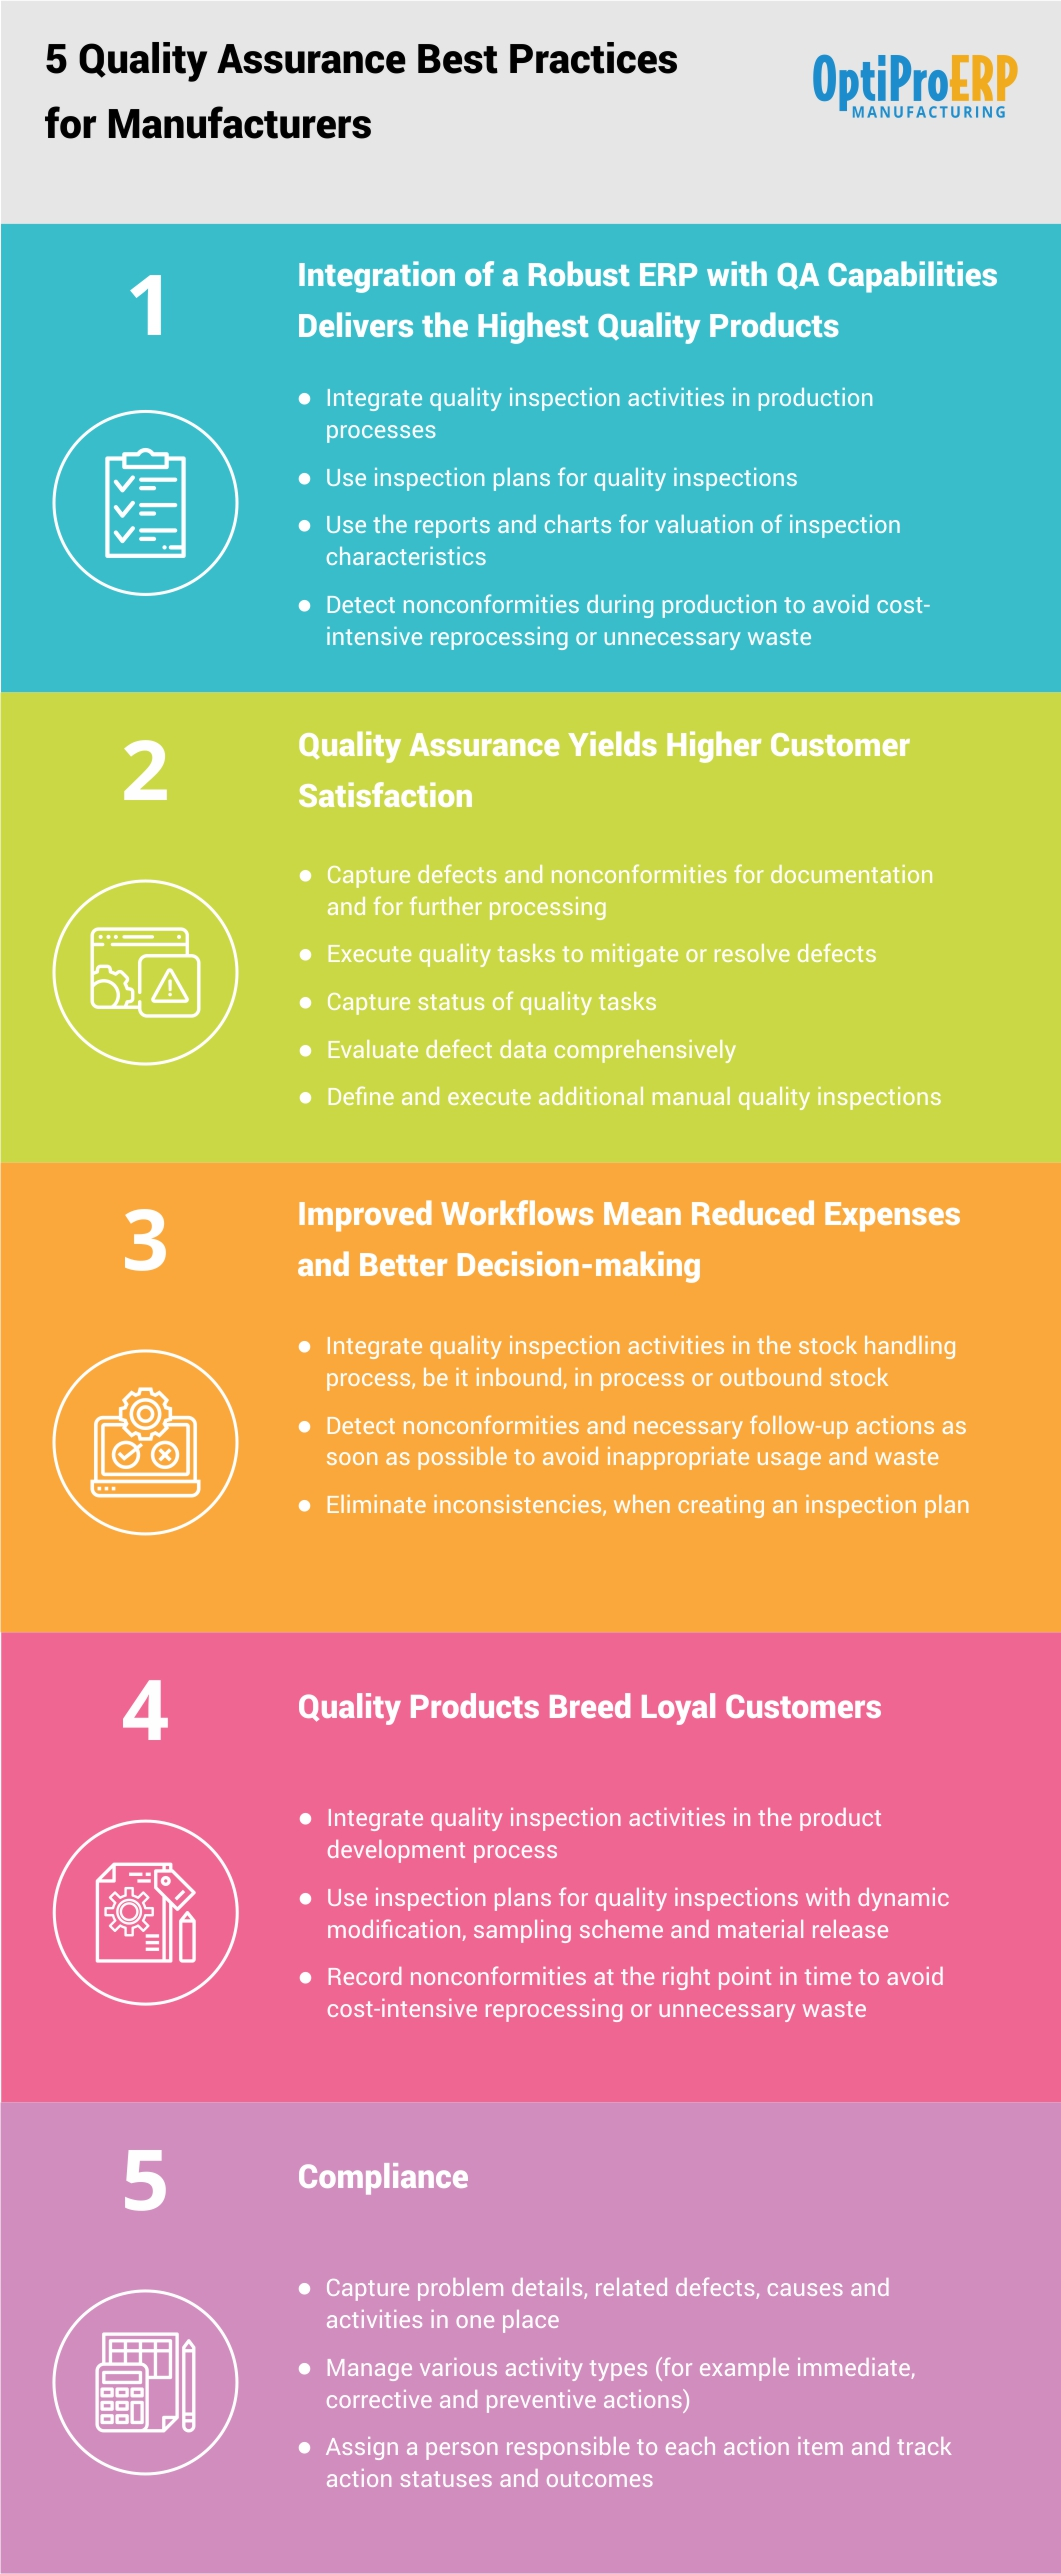 5 Quality Assurance Best Practices for Manufacturers